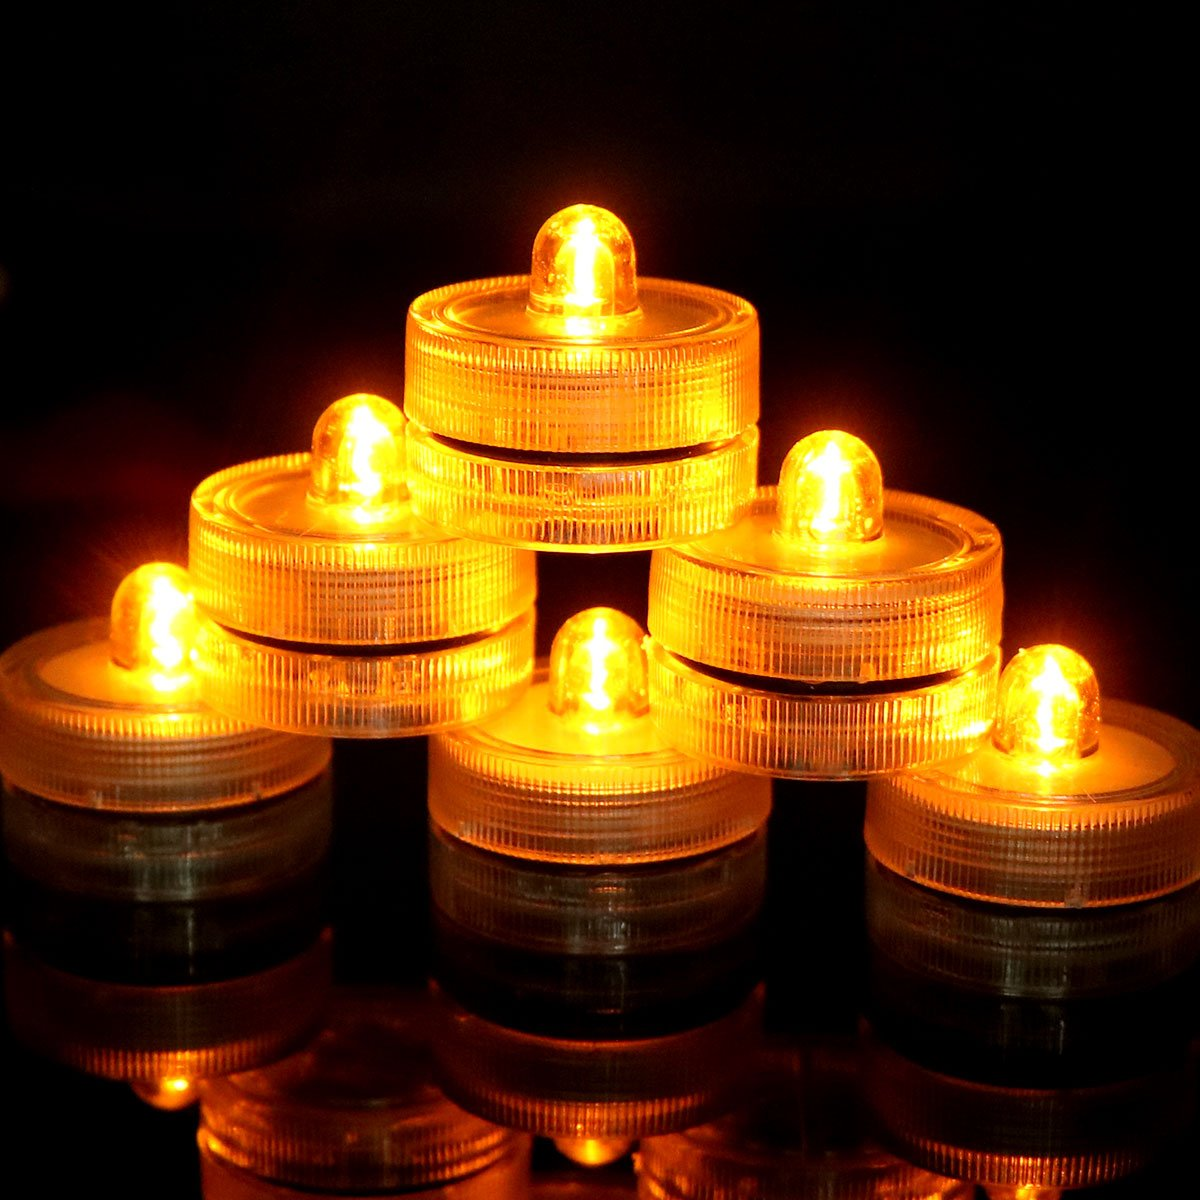 Youngerbaby 12pcs Submersible Flameless Tea Light Battery Operated Waterproof LED Tealights Yellow Underwater Vase Light for Xmas/Holiday/Winter Decorations Ornaments Party Supplies